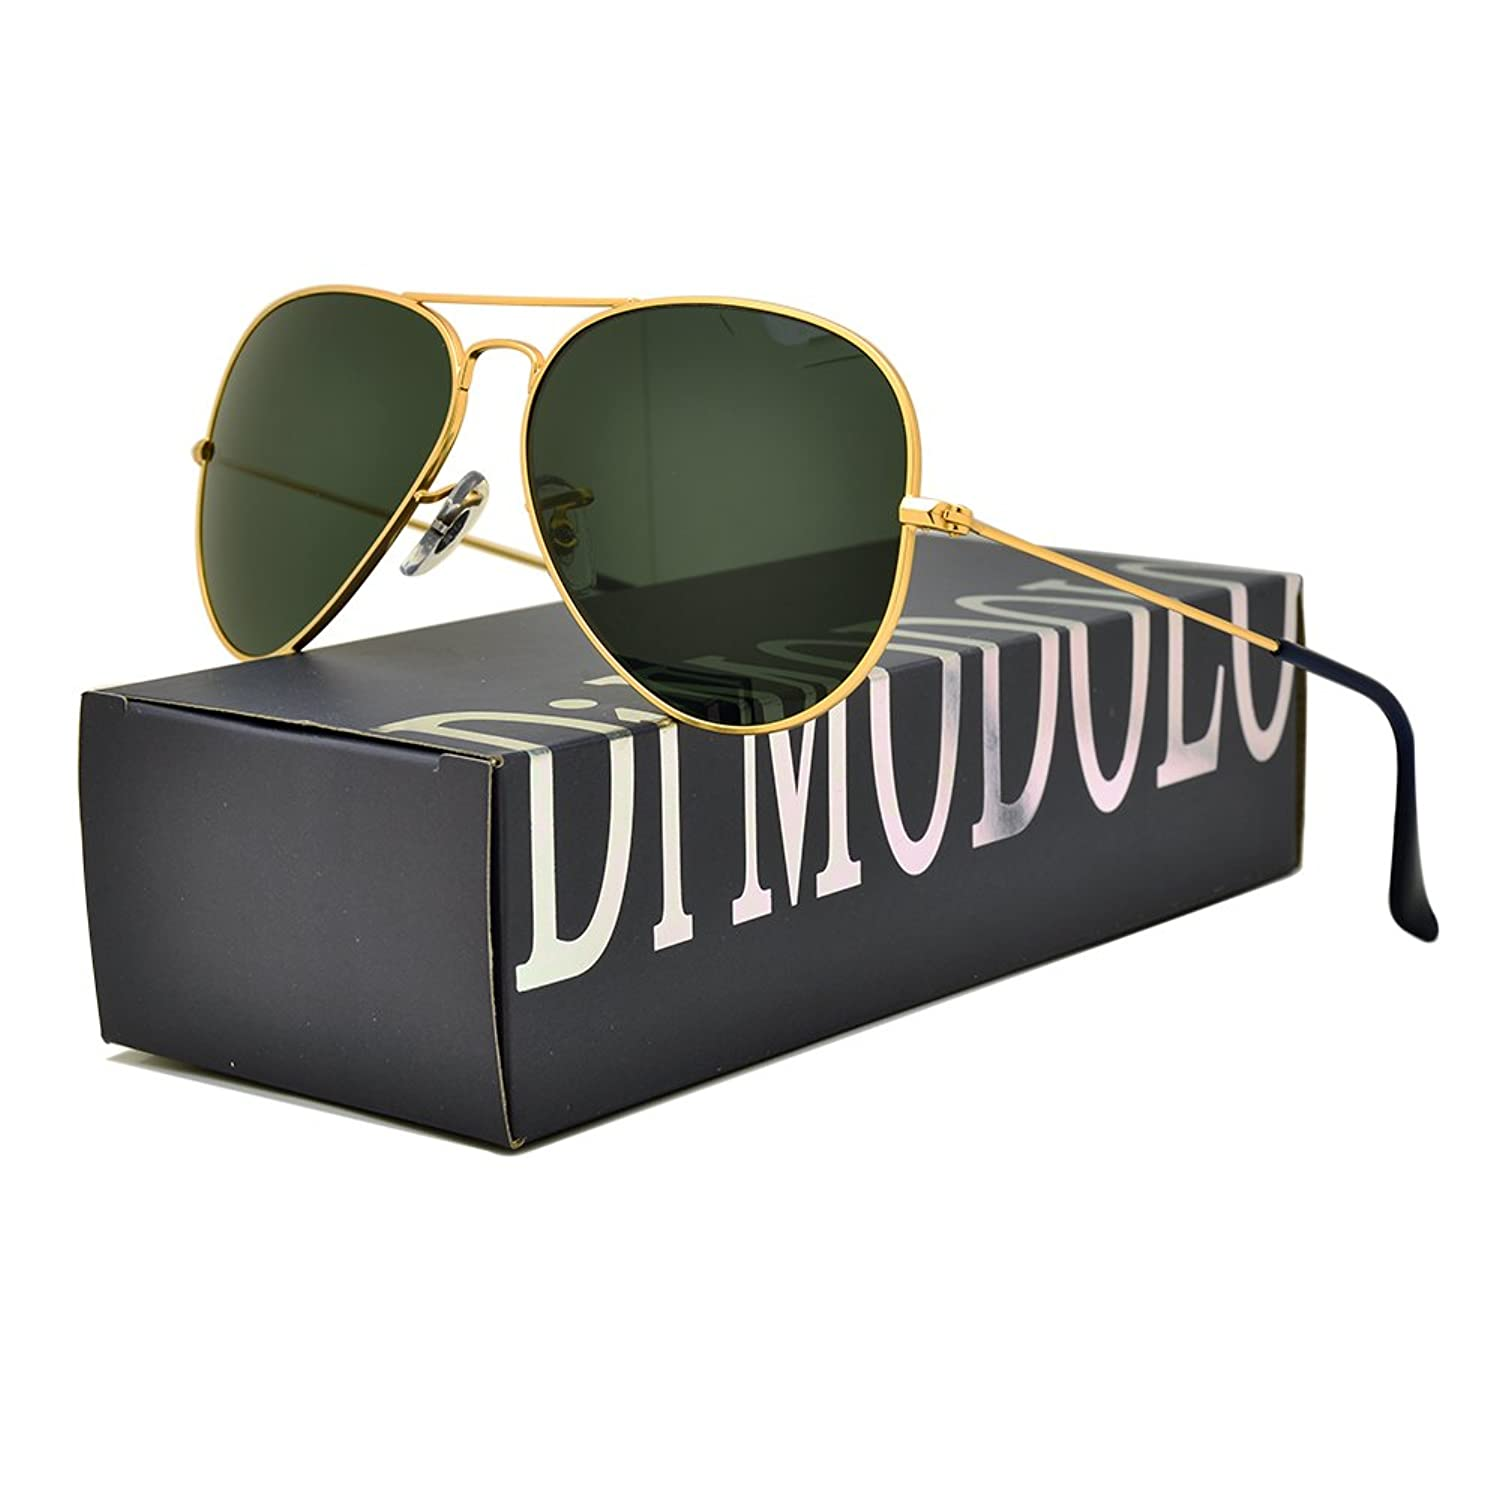 Actual Glass Lens and Polarized Multiple Color Options. Fishion Matte Metal Frame Aviator Sunglasses UV400